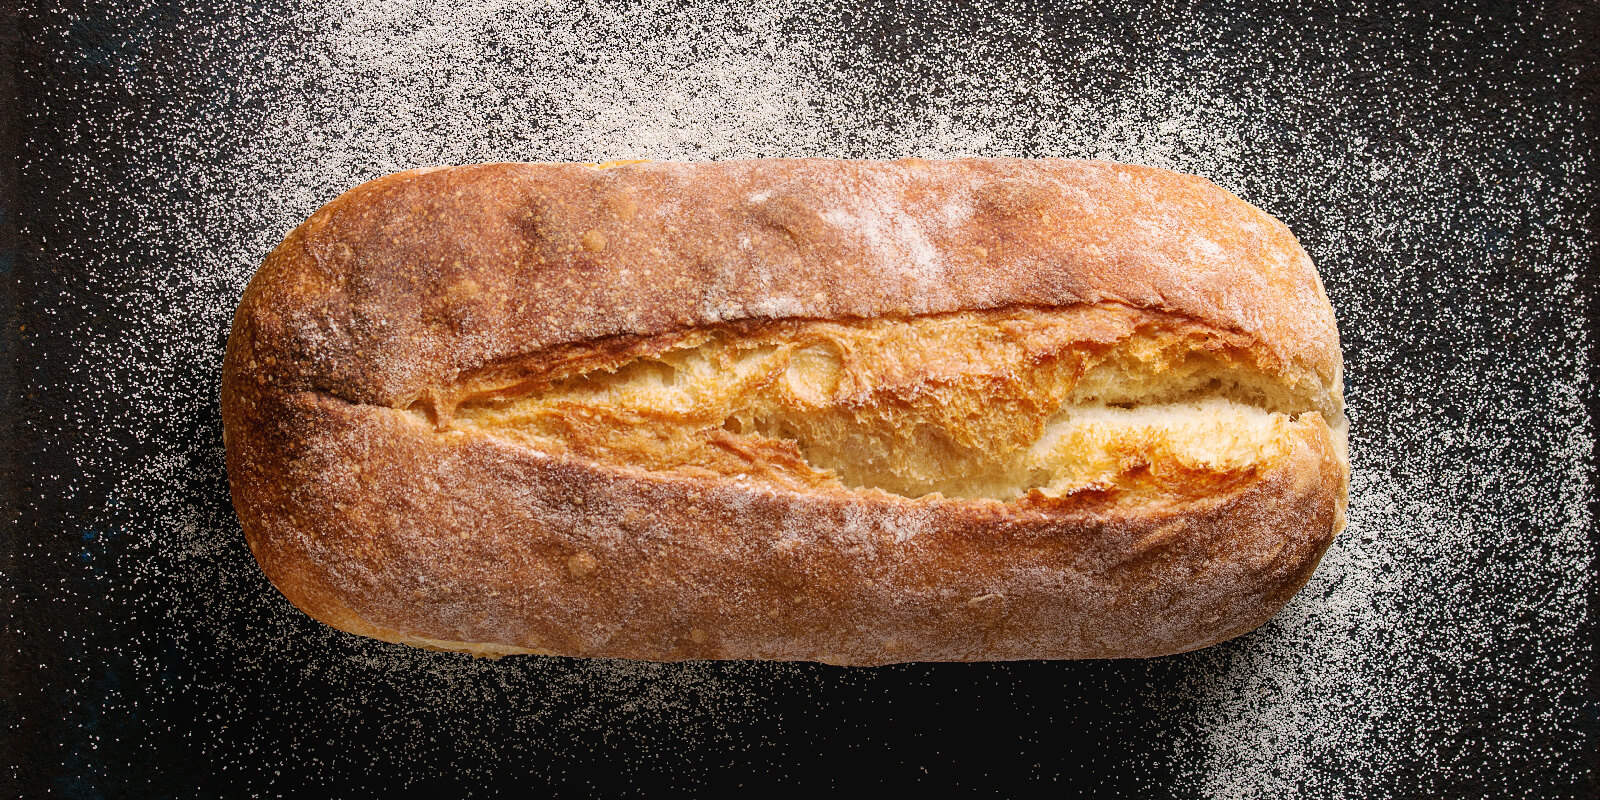 A photo of some bread